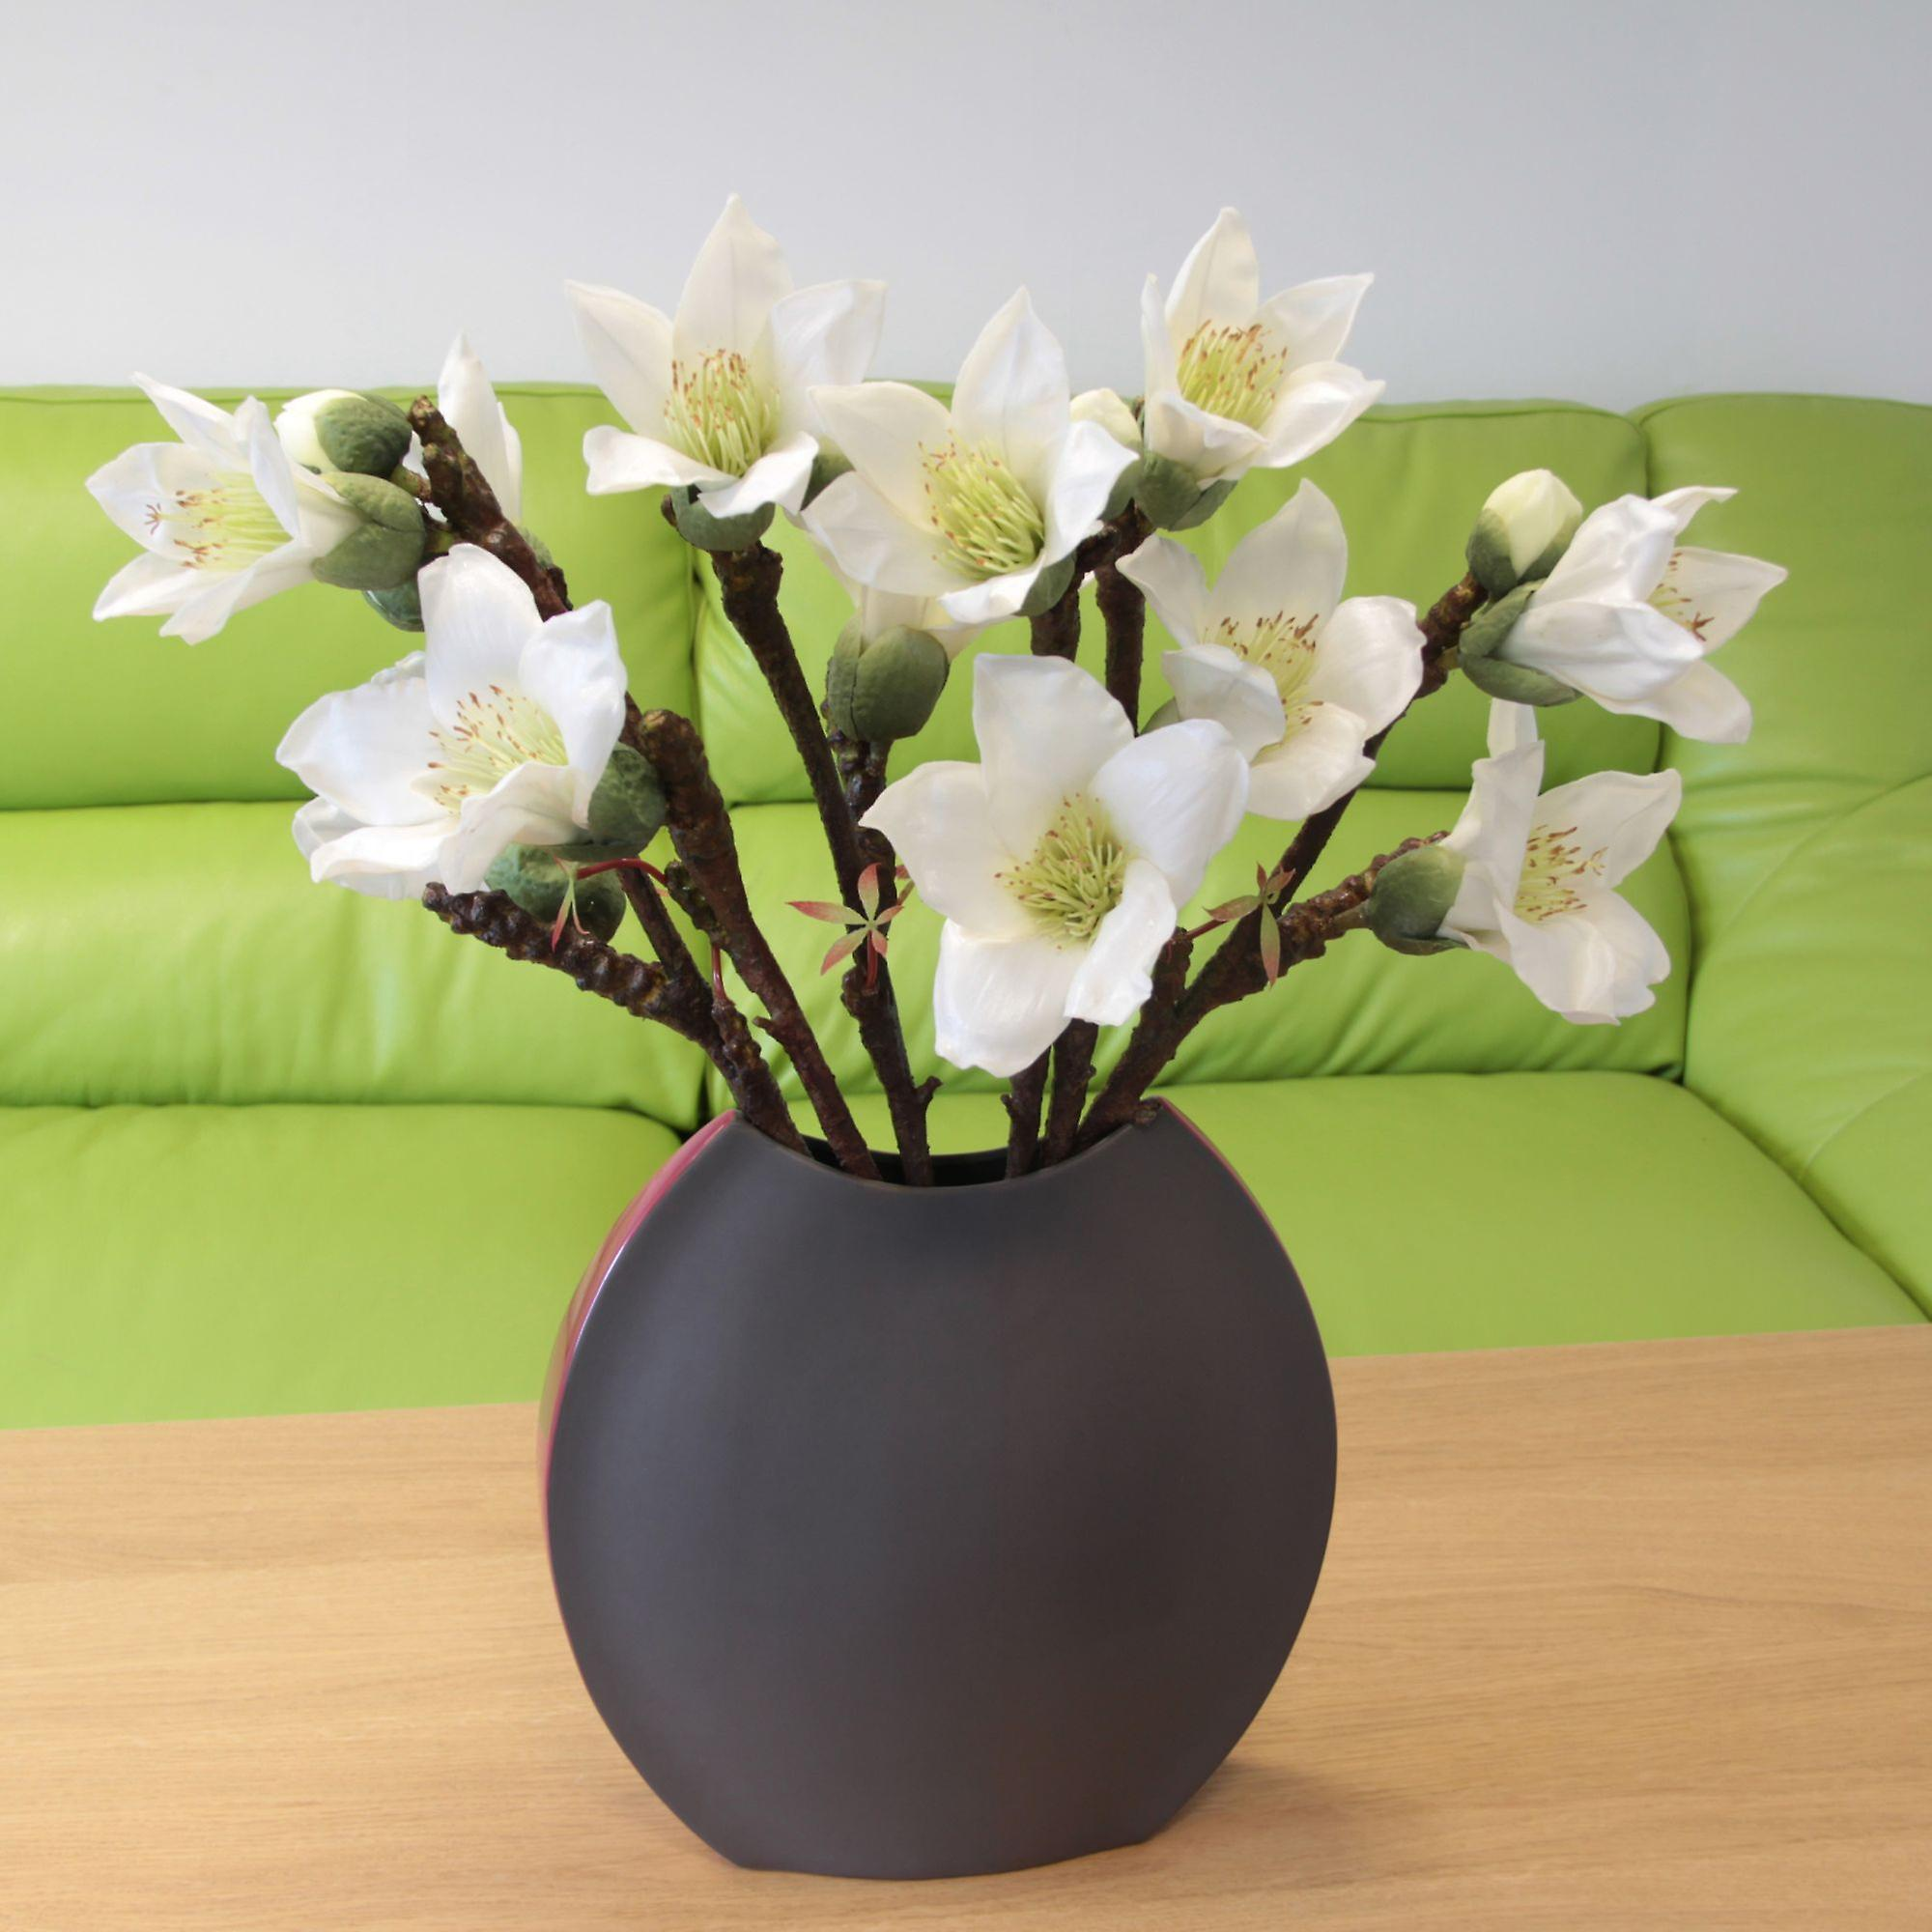 Saffronstem Artificial White Kapok Spray, Real Touch and Look Latex Flowers